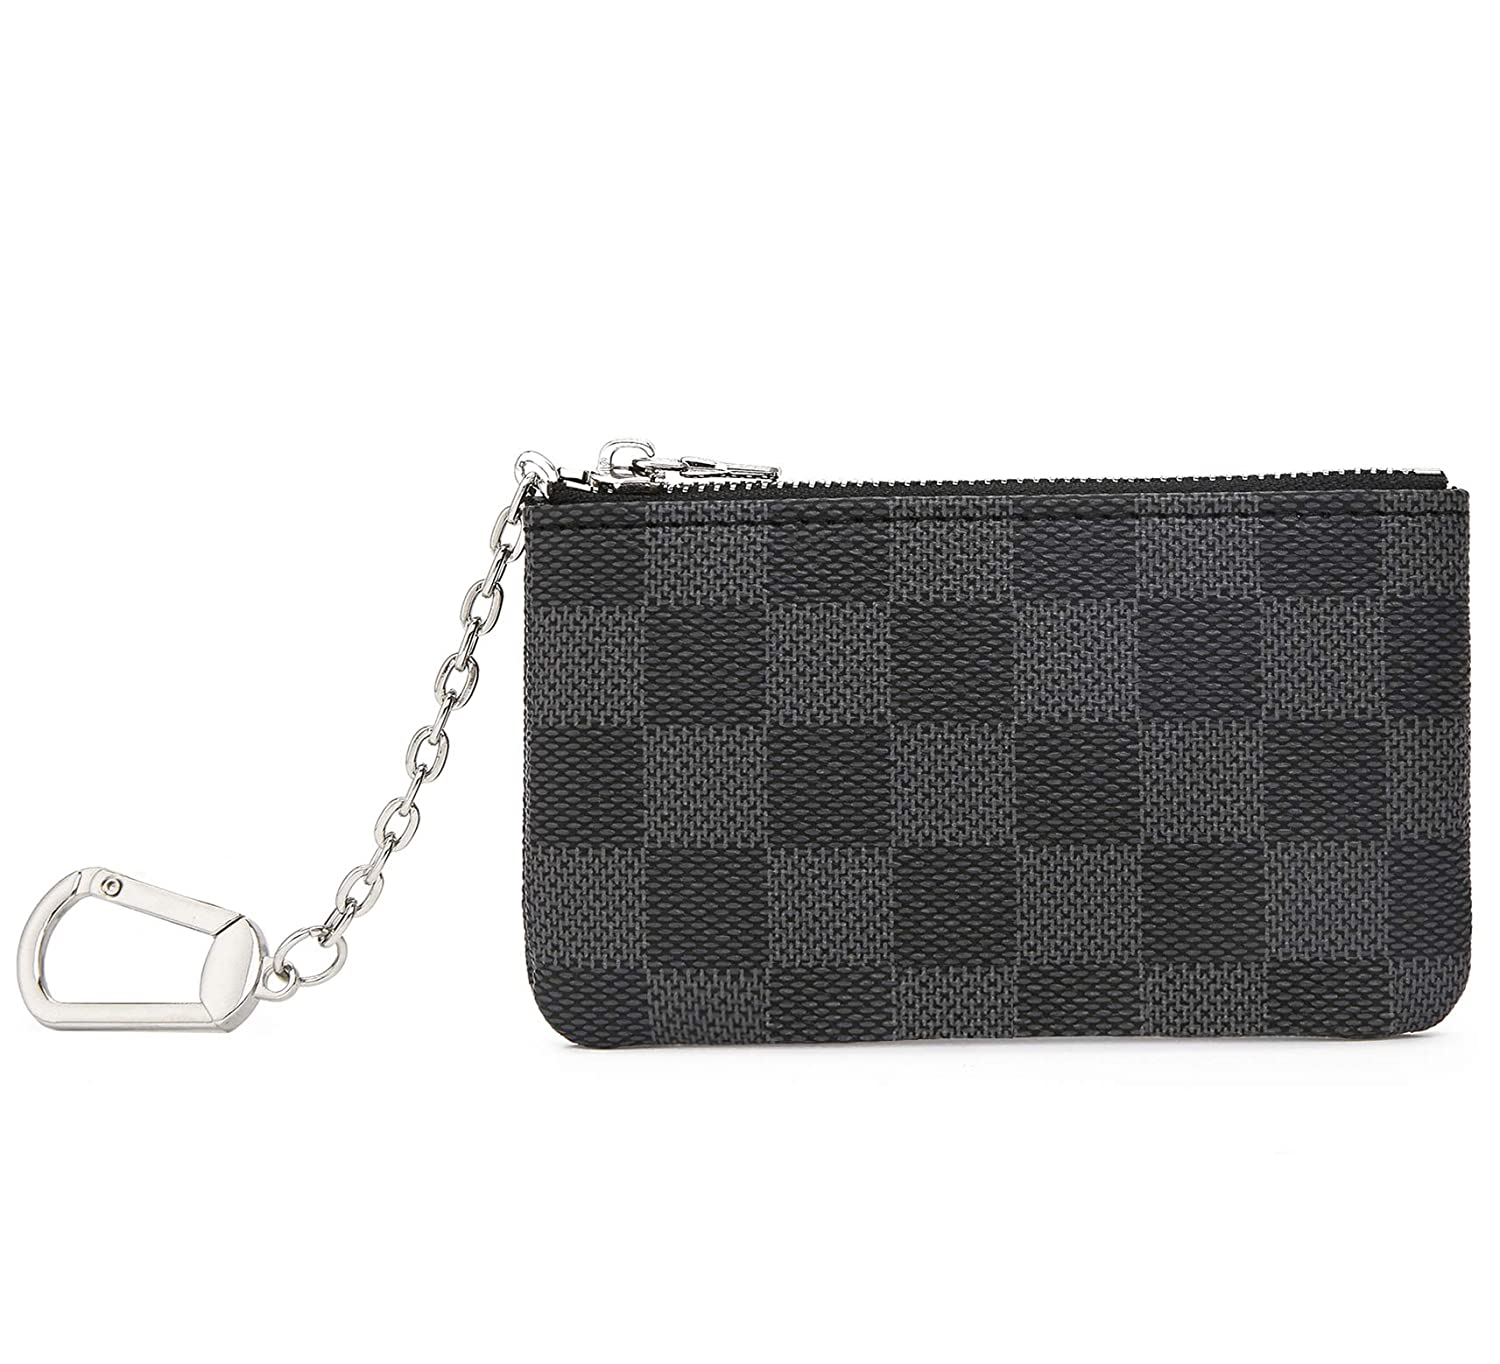 Miracle Checkered Zip Key Chain Pouch | Mini Coin Purse Wallet Card Holder with Clasp | PU Vegan Leather for Men Women